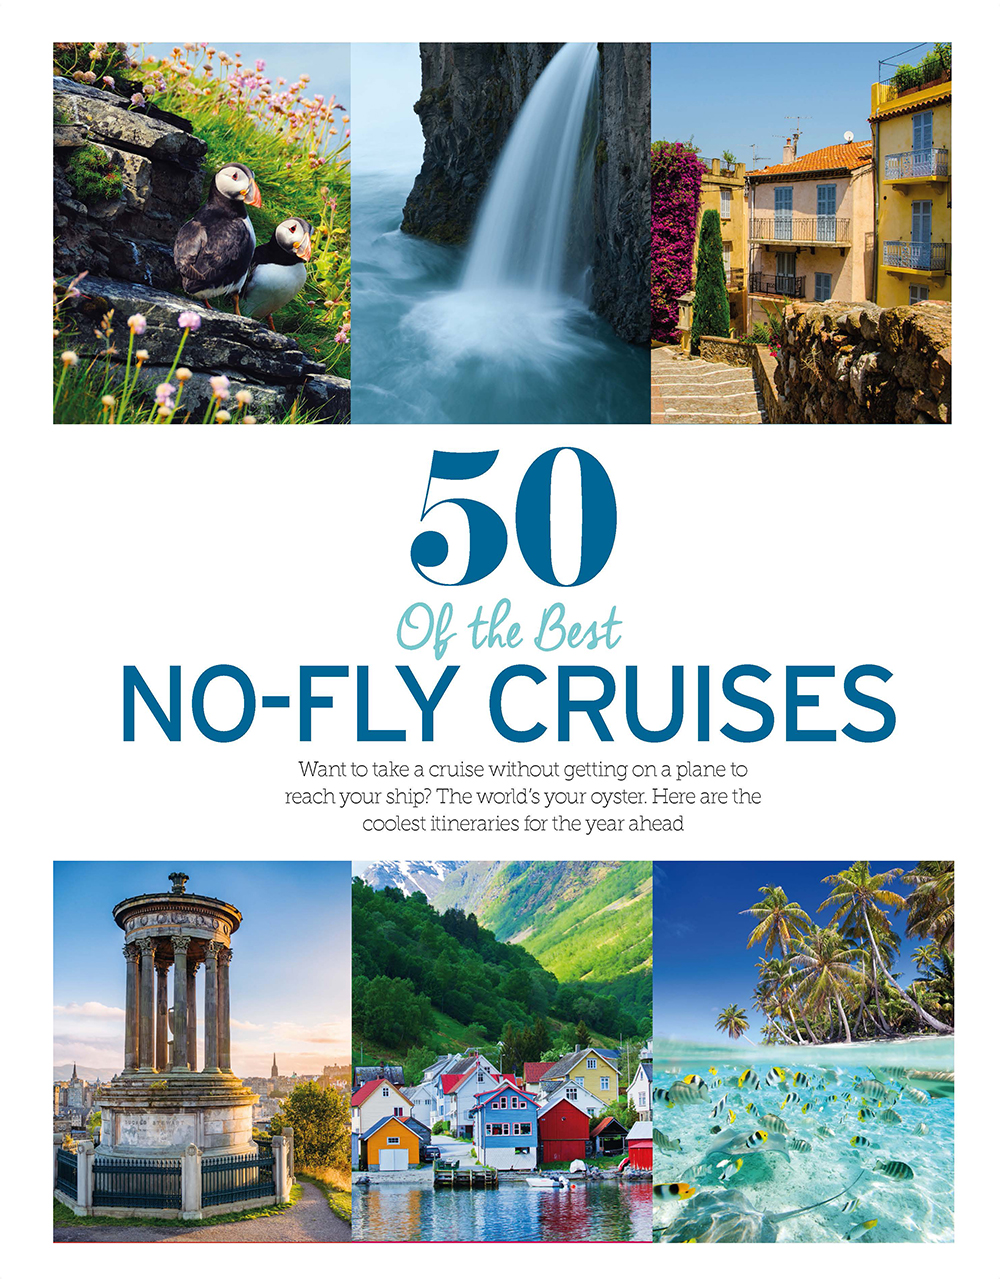 50 Of The Best No-fly Cruises, Cruise International June